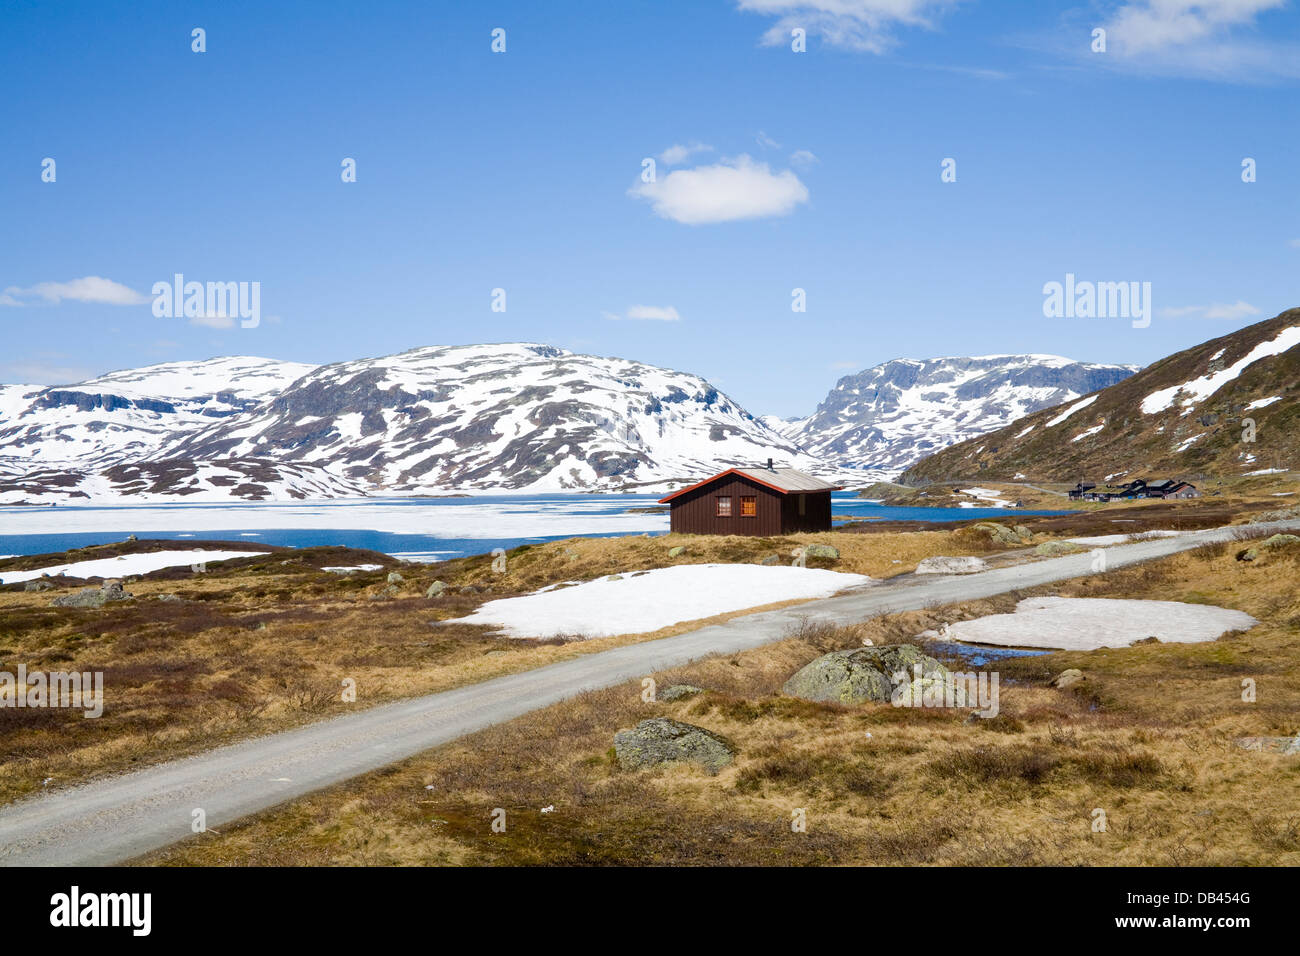 Telemark Norway Europe Refuge hut and holiday homes in wild moorland with lakes still frozen and snow covered mountains - Stock Image